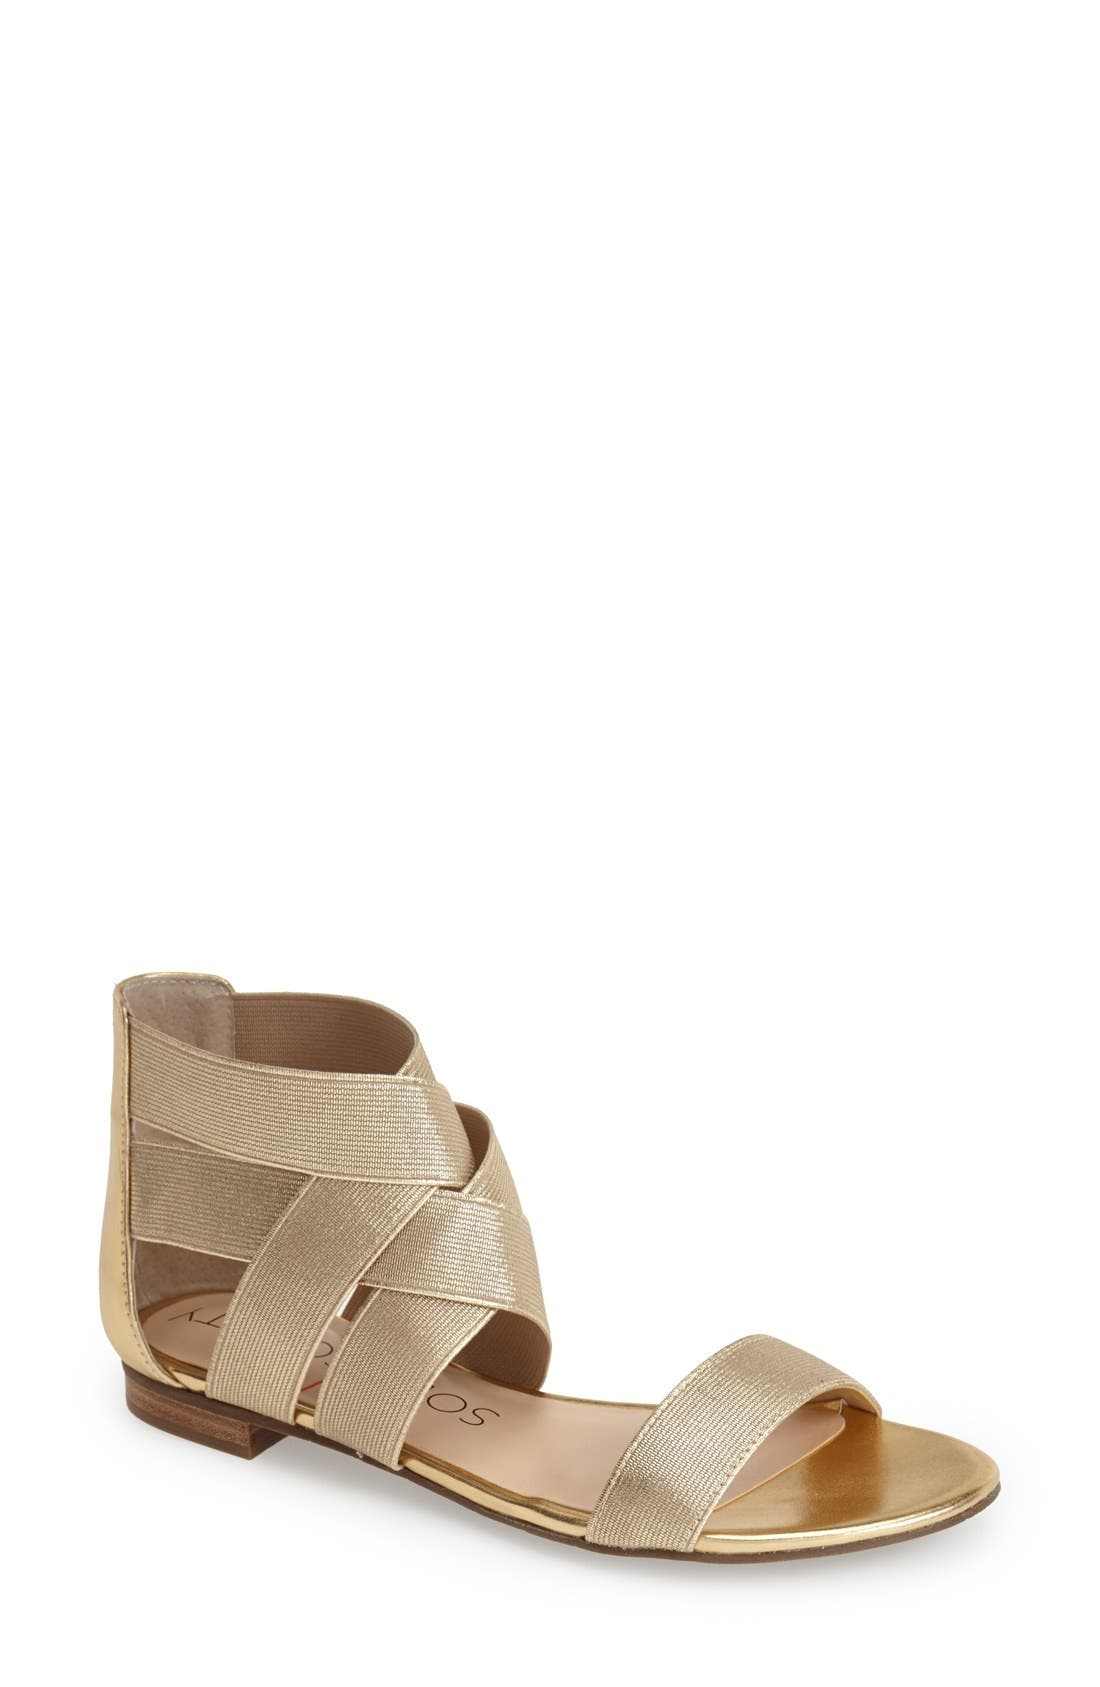 Alternate Image 1 Selected - Sole Society 'Aggie' Ankle Strap Sandal (Women)